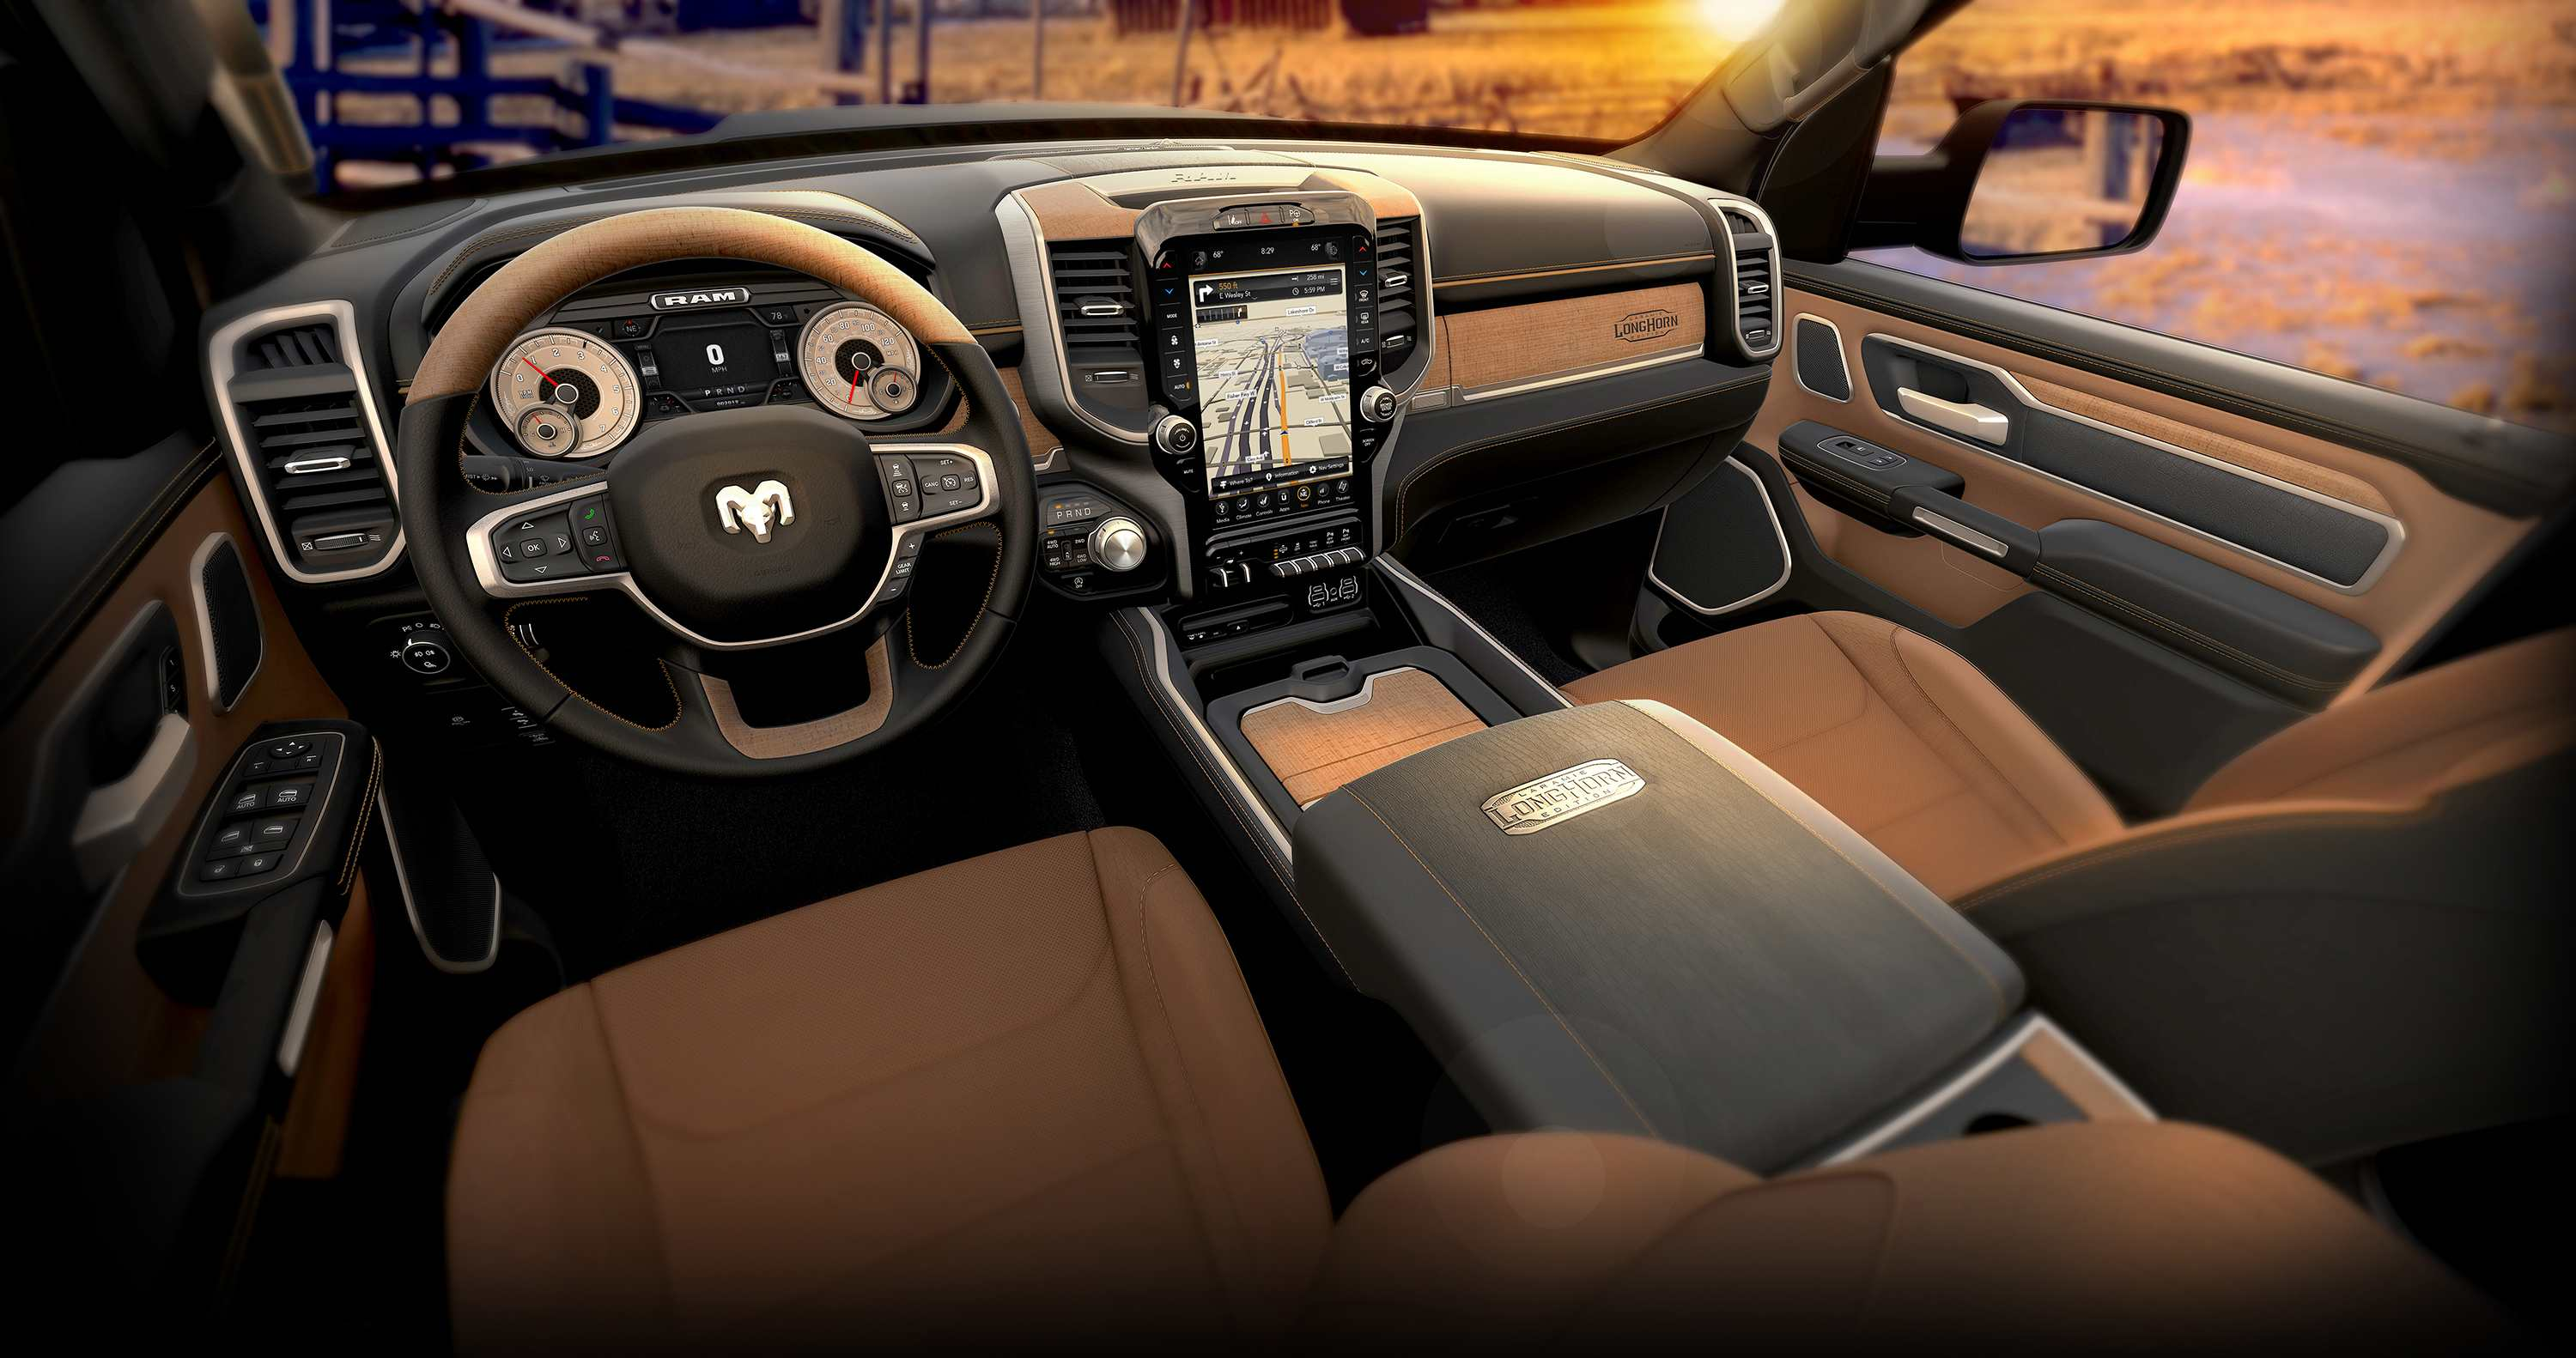 71 Concept of 2019 Dodge Interior Review by 2019 Dodge Interior